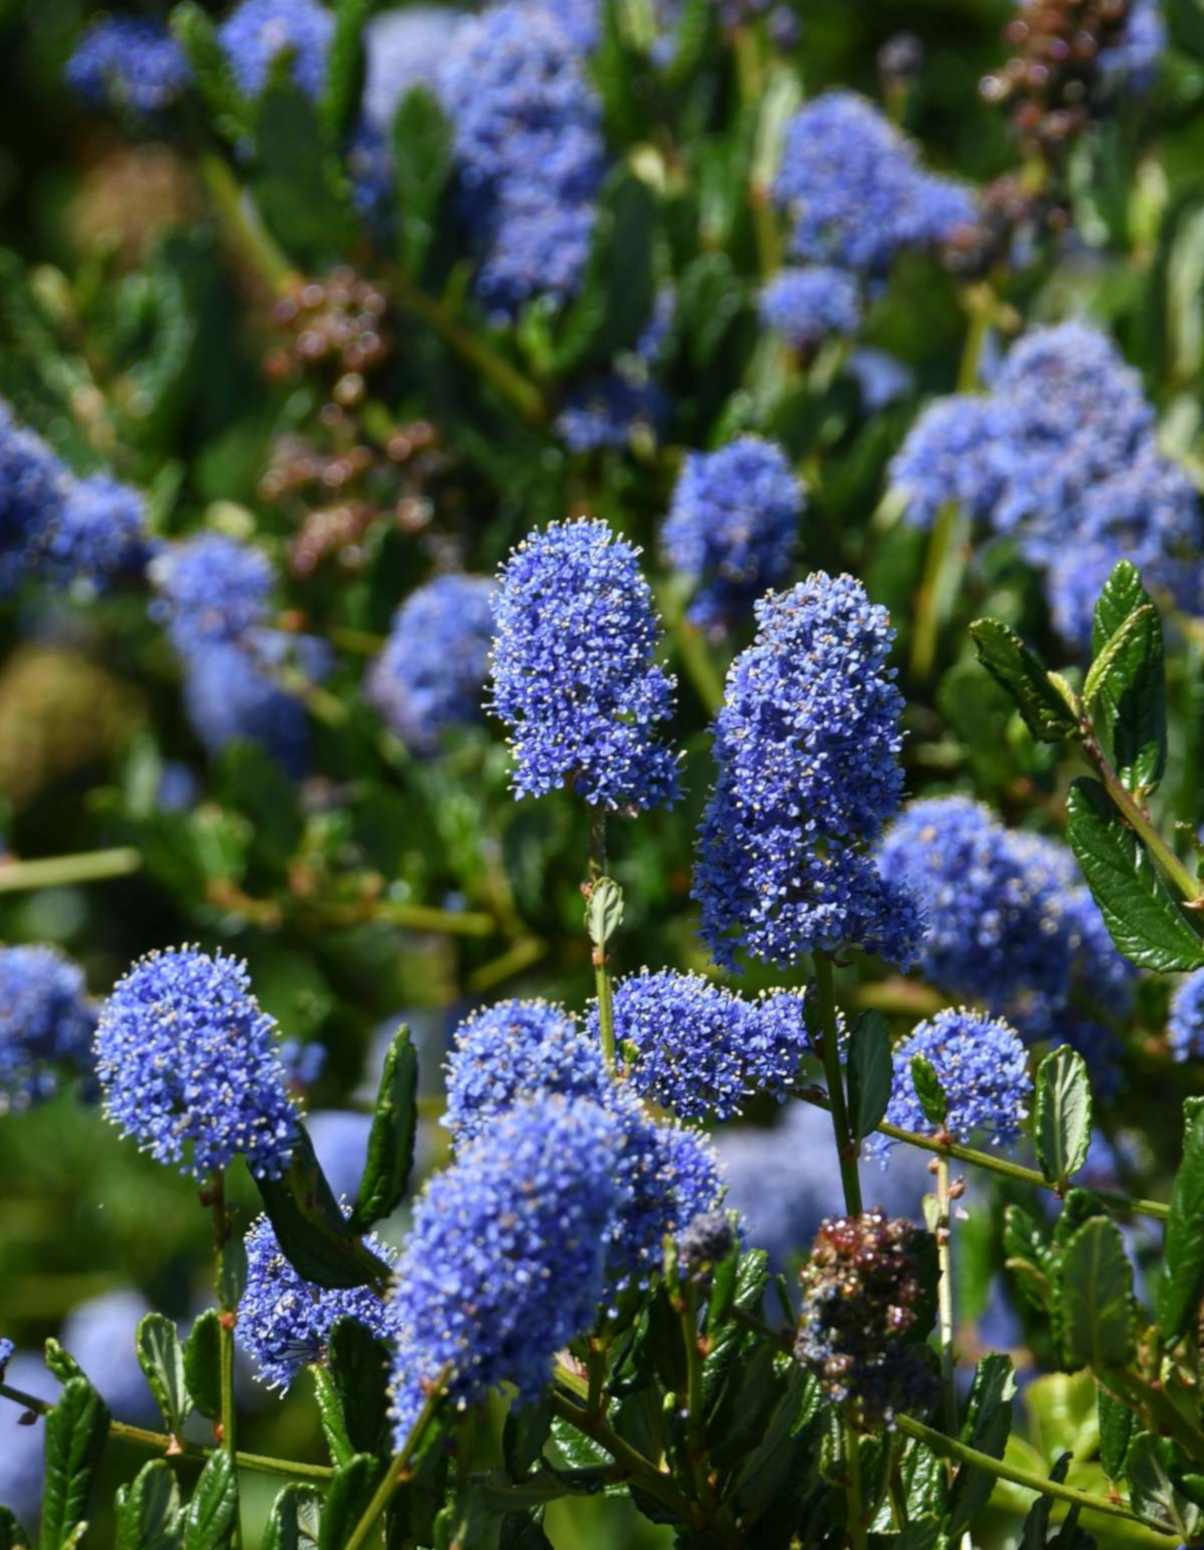 Blue-colored soap bush flowers